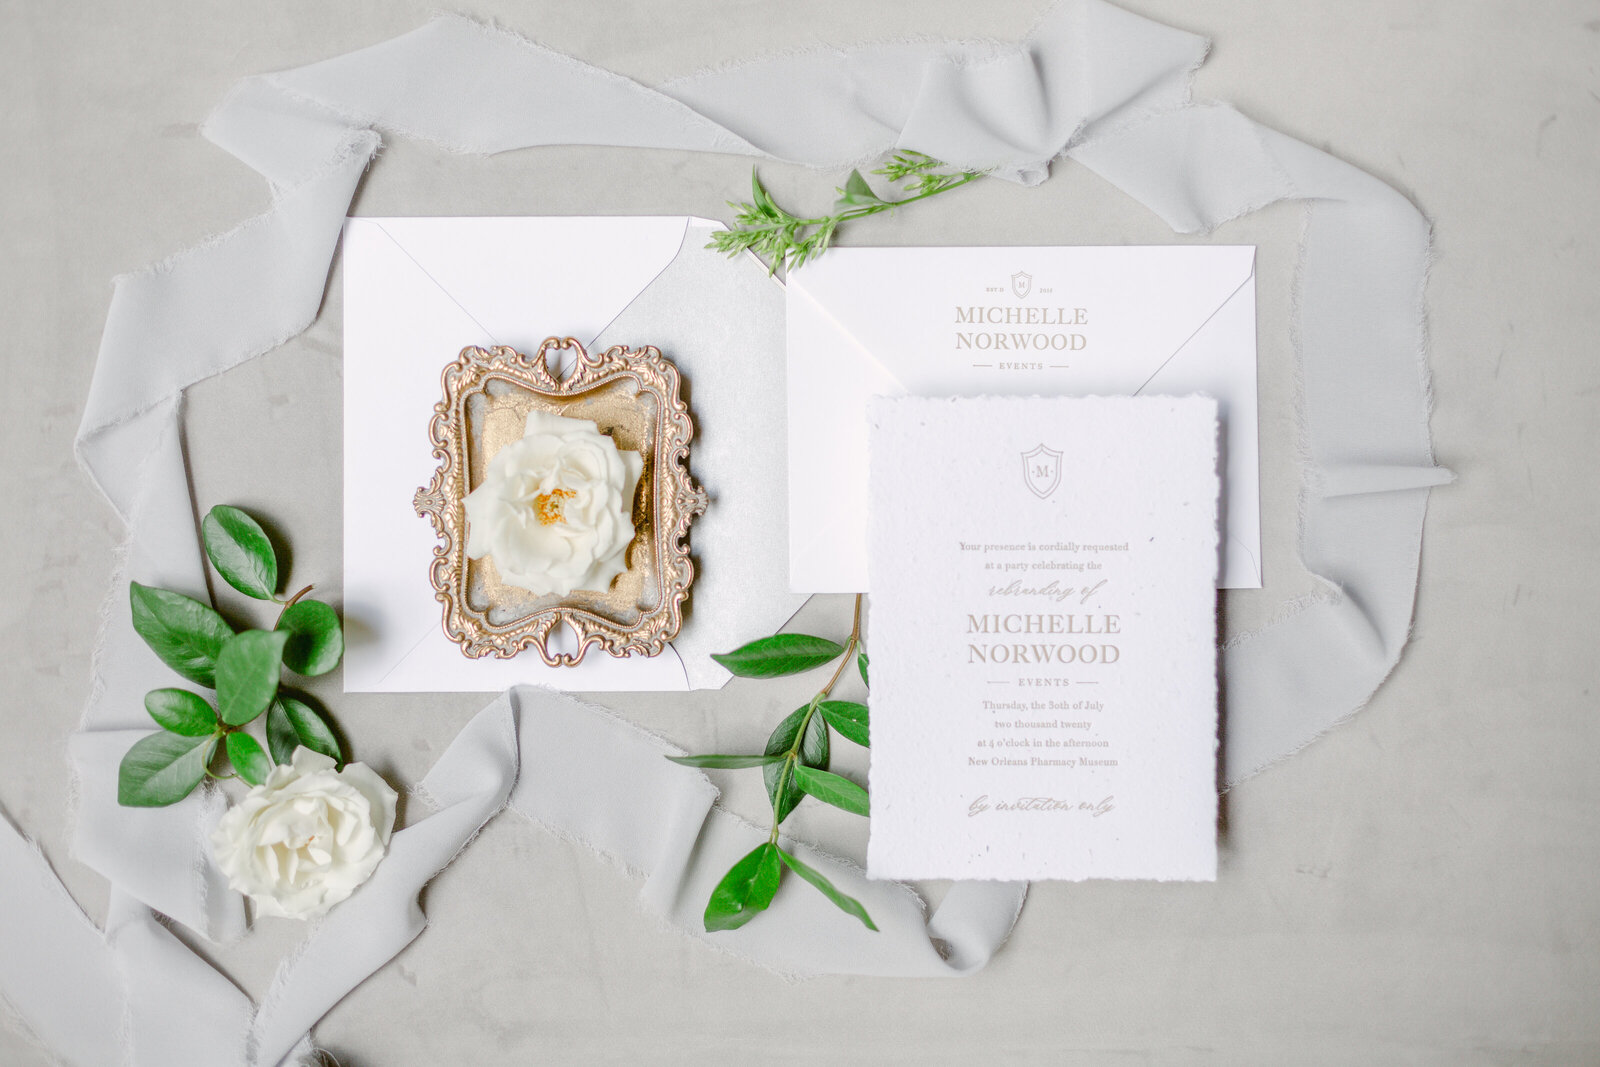 Resources | Michelle Norwood Events: New Orleans Destination Wedding Planner